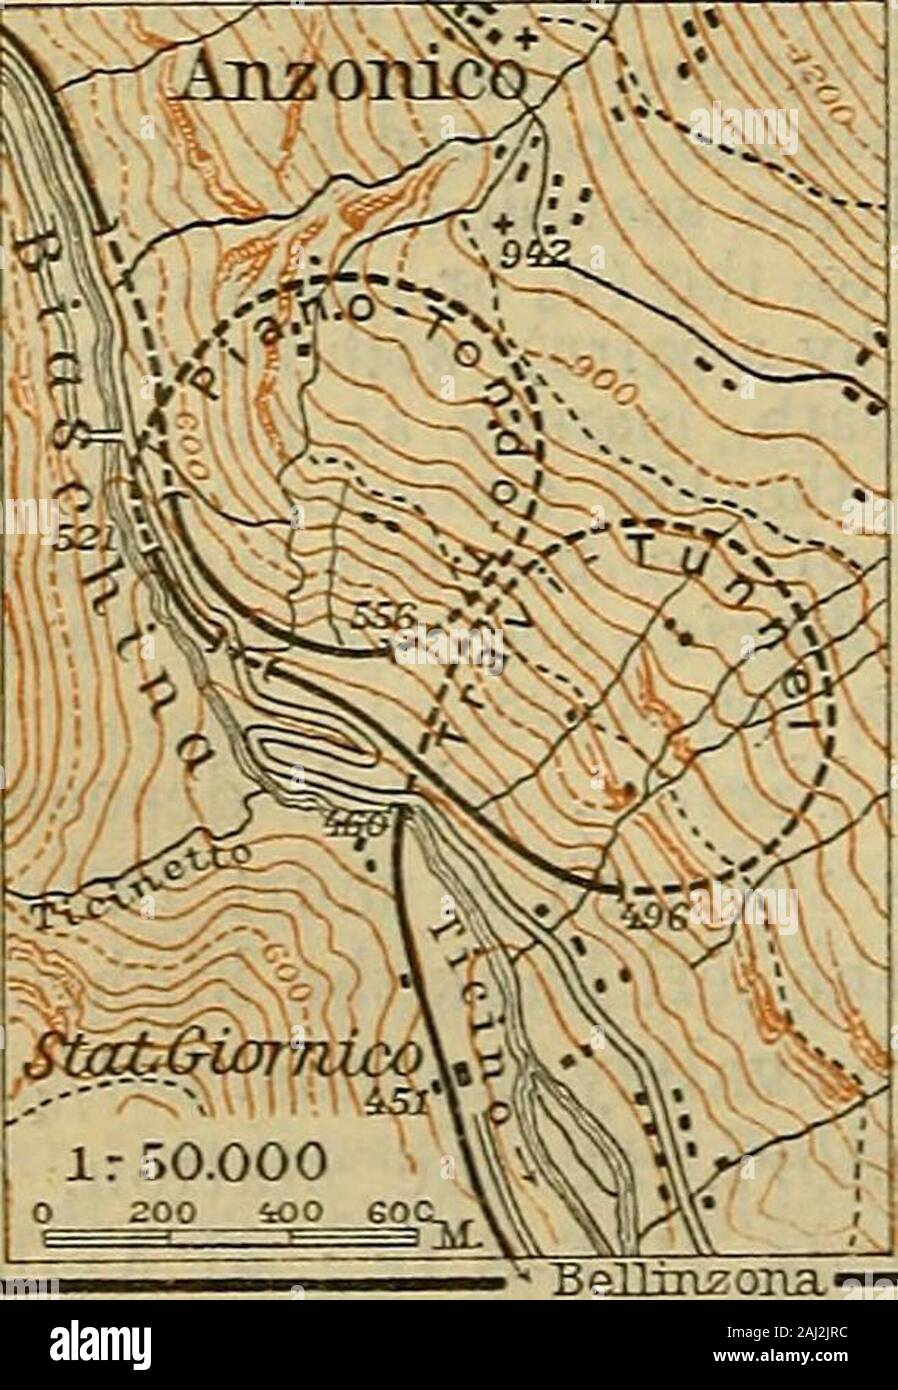 Switzerland ; and the adjacent portions of Italy, Savoy and Tyrol ; handbook for travellers . to a lower re-gion of the valley. At Dazio Grande(3110) the railway crosses the Ticino,and after being carried through twoshort tunnels and the Freggio SpiralTunnel (1712 yds.), it emerges inthe Piottino Ravine, 118 lowerdown. It then recrosses the Ticino(fine scenery), passes through theMonte Piottino and Par dorea Tun-nels, and descends 118 more by meansof the Prato Spiral Tunnel (1711yds.). Finally,, beyond the short Buscierina Tunnel, opens thefertile valley of Faido. The Ticino is crossed by the Stock Photo